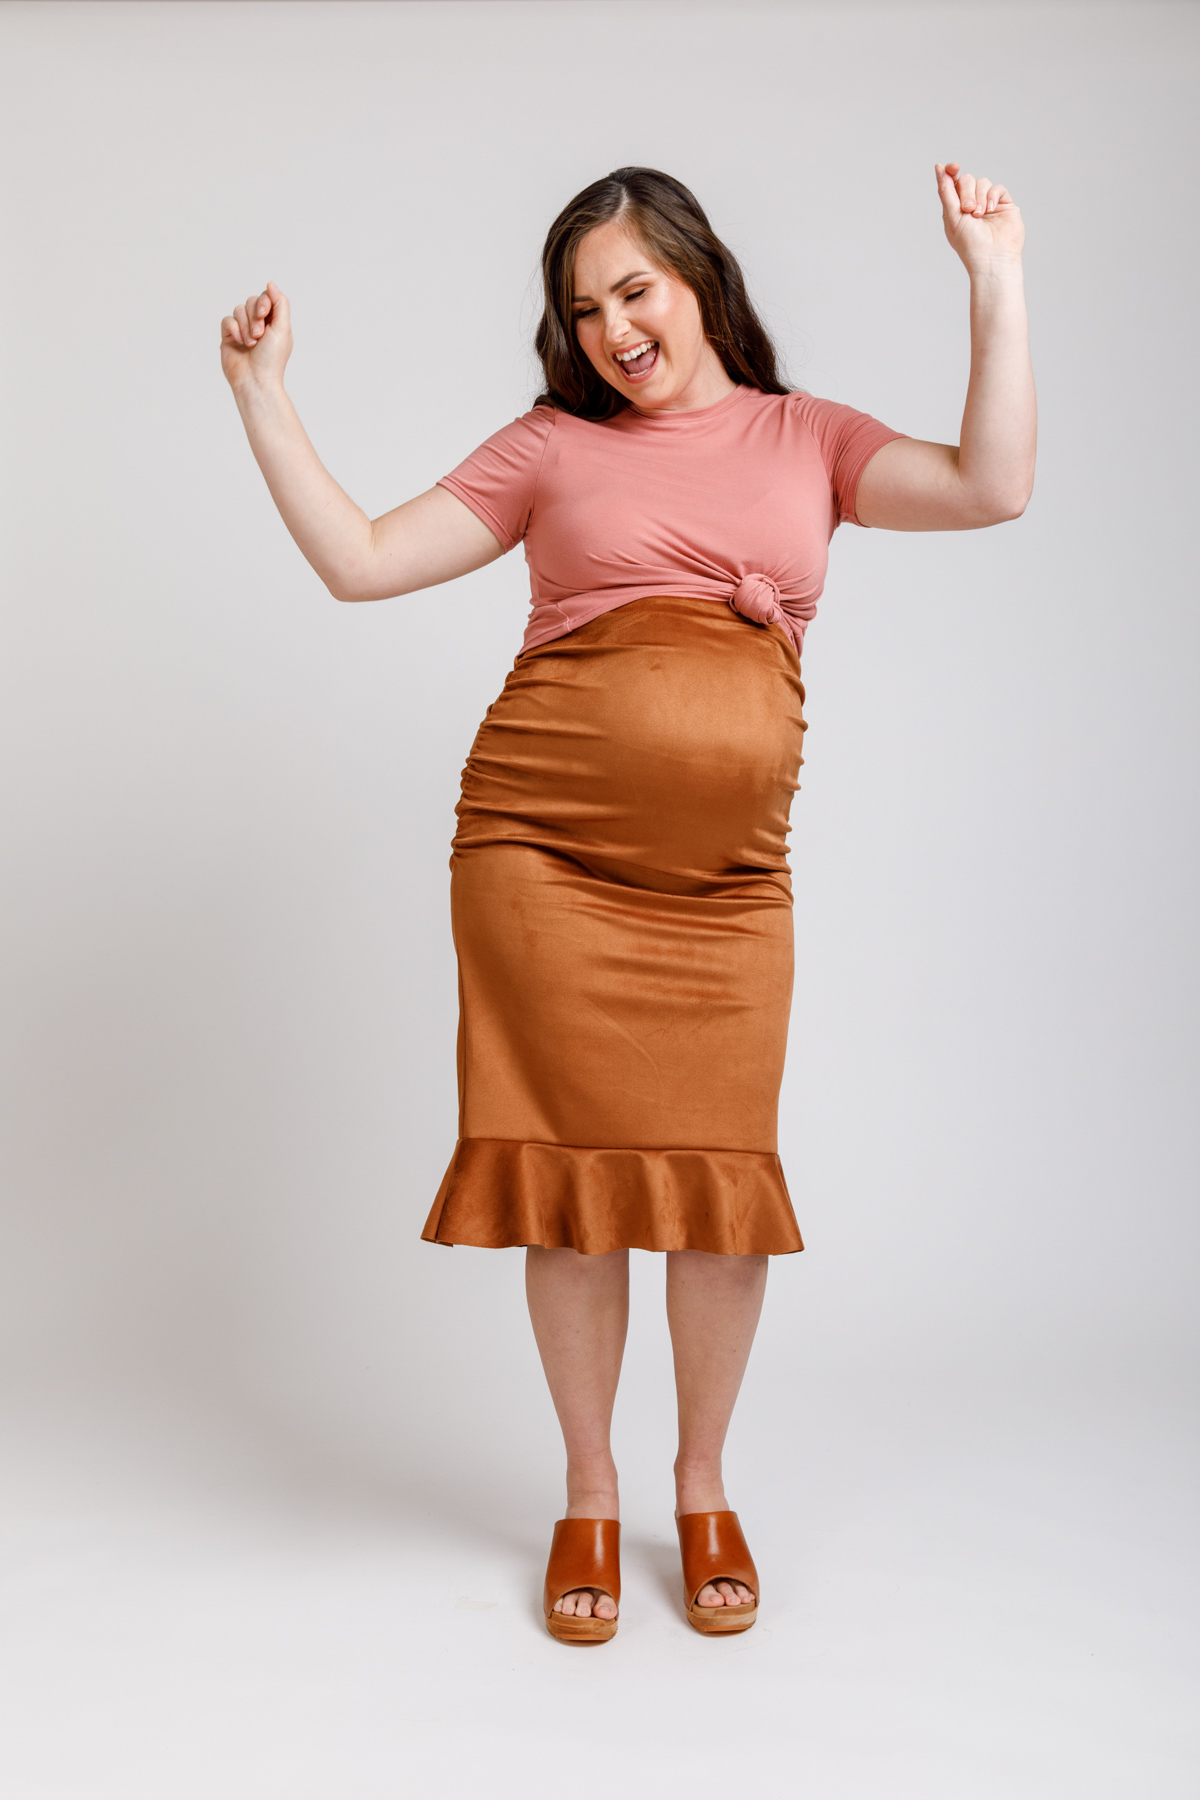 Floreat cropped tee knotted over Erin maternity skirt